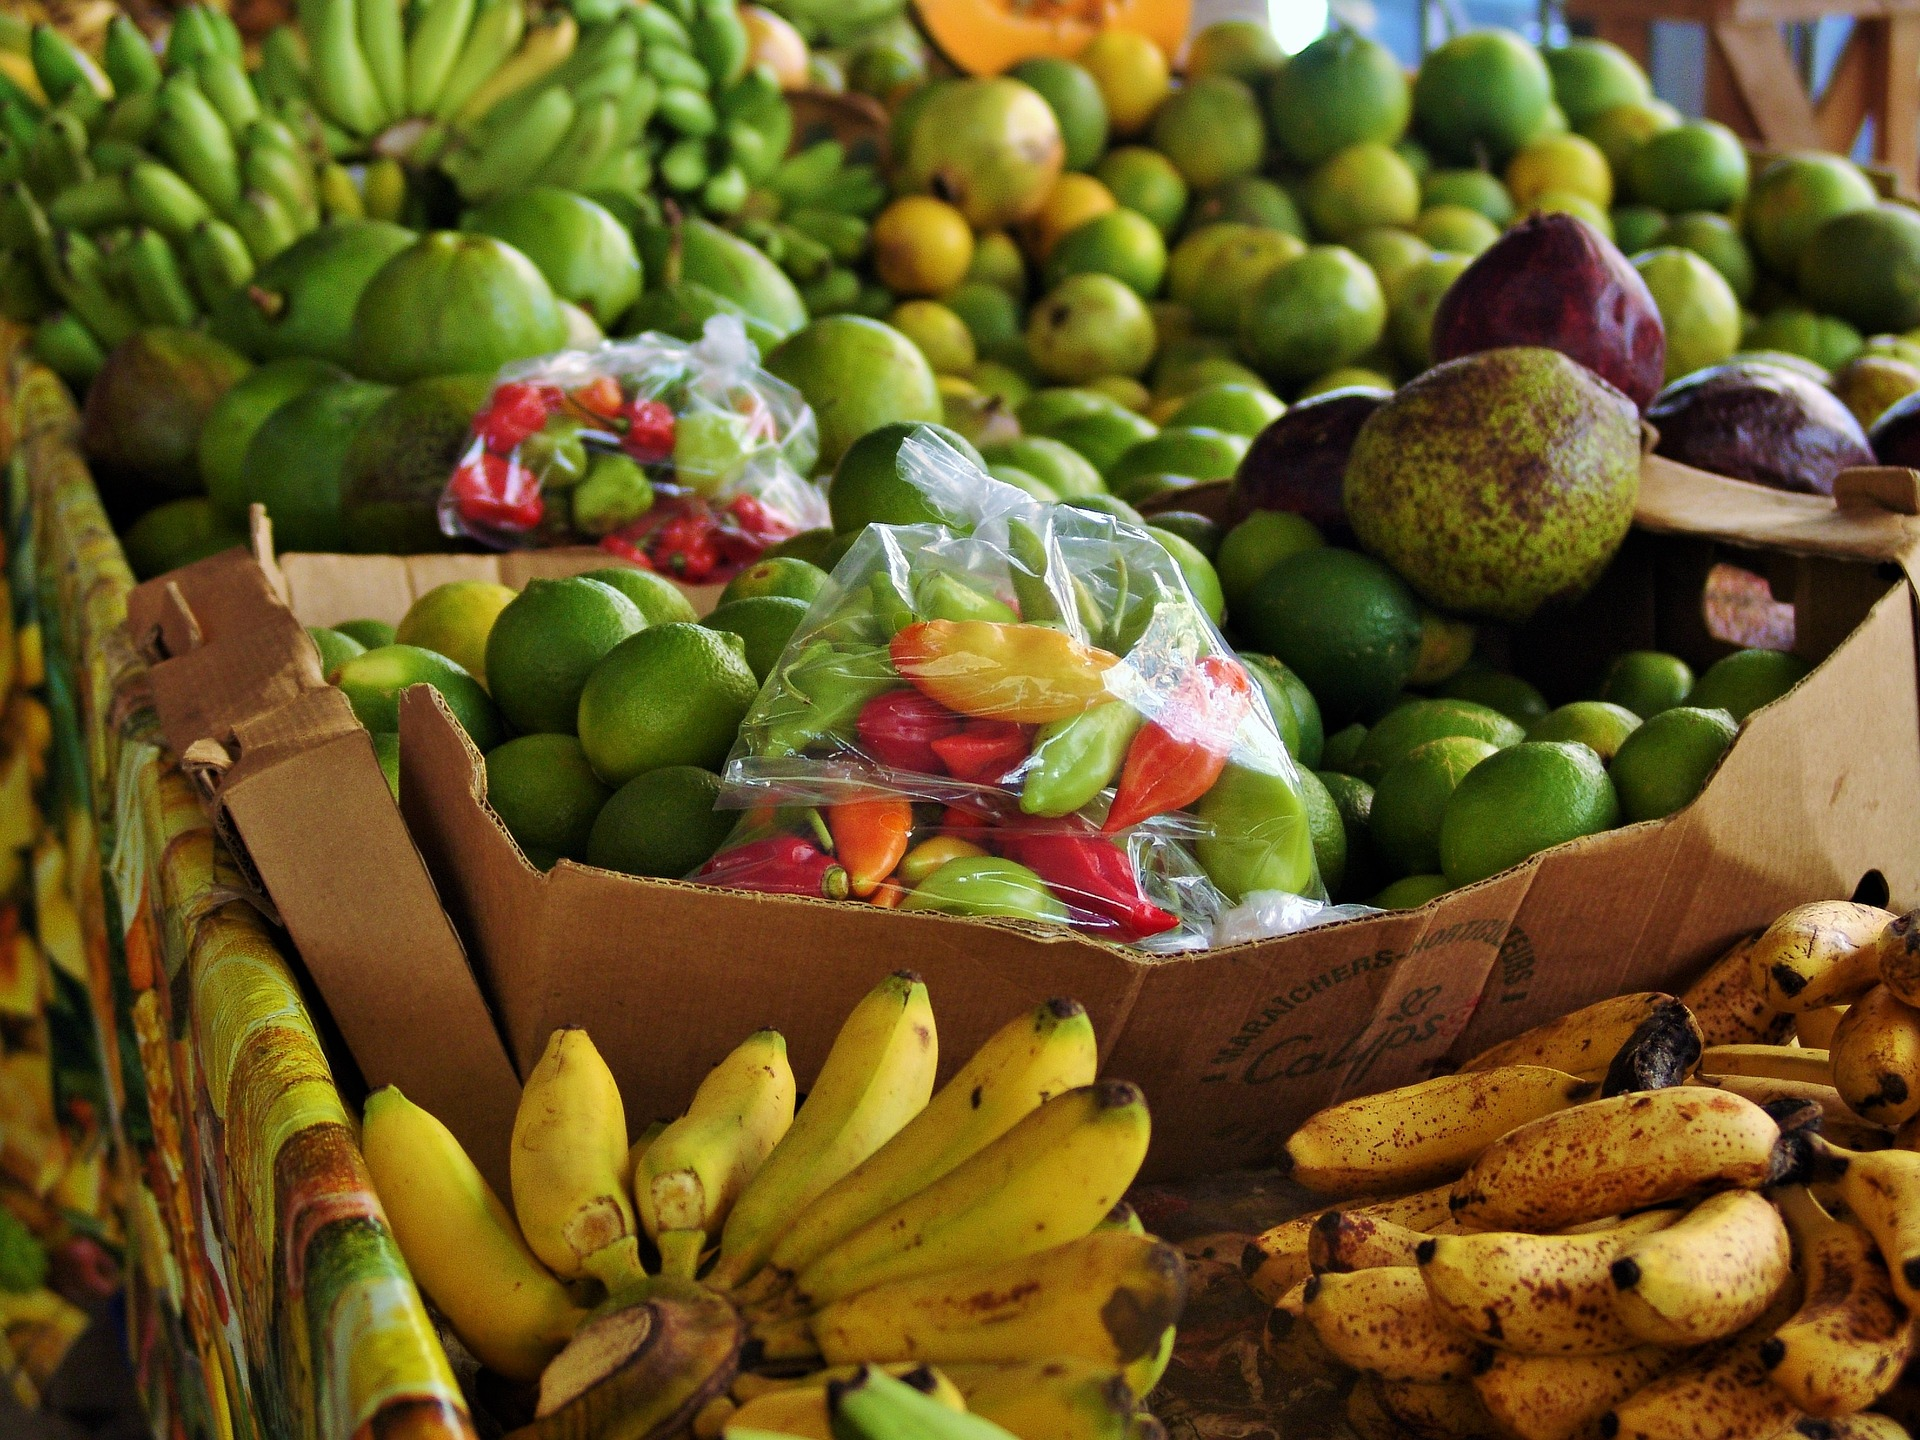 Fruit market in the Caribbean